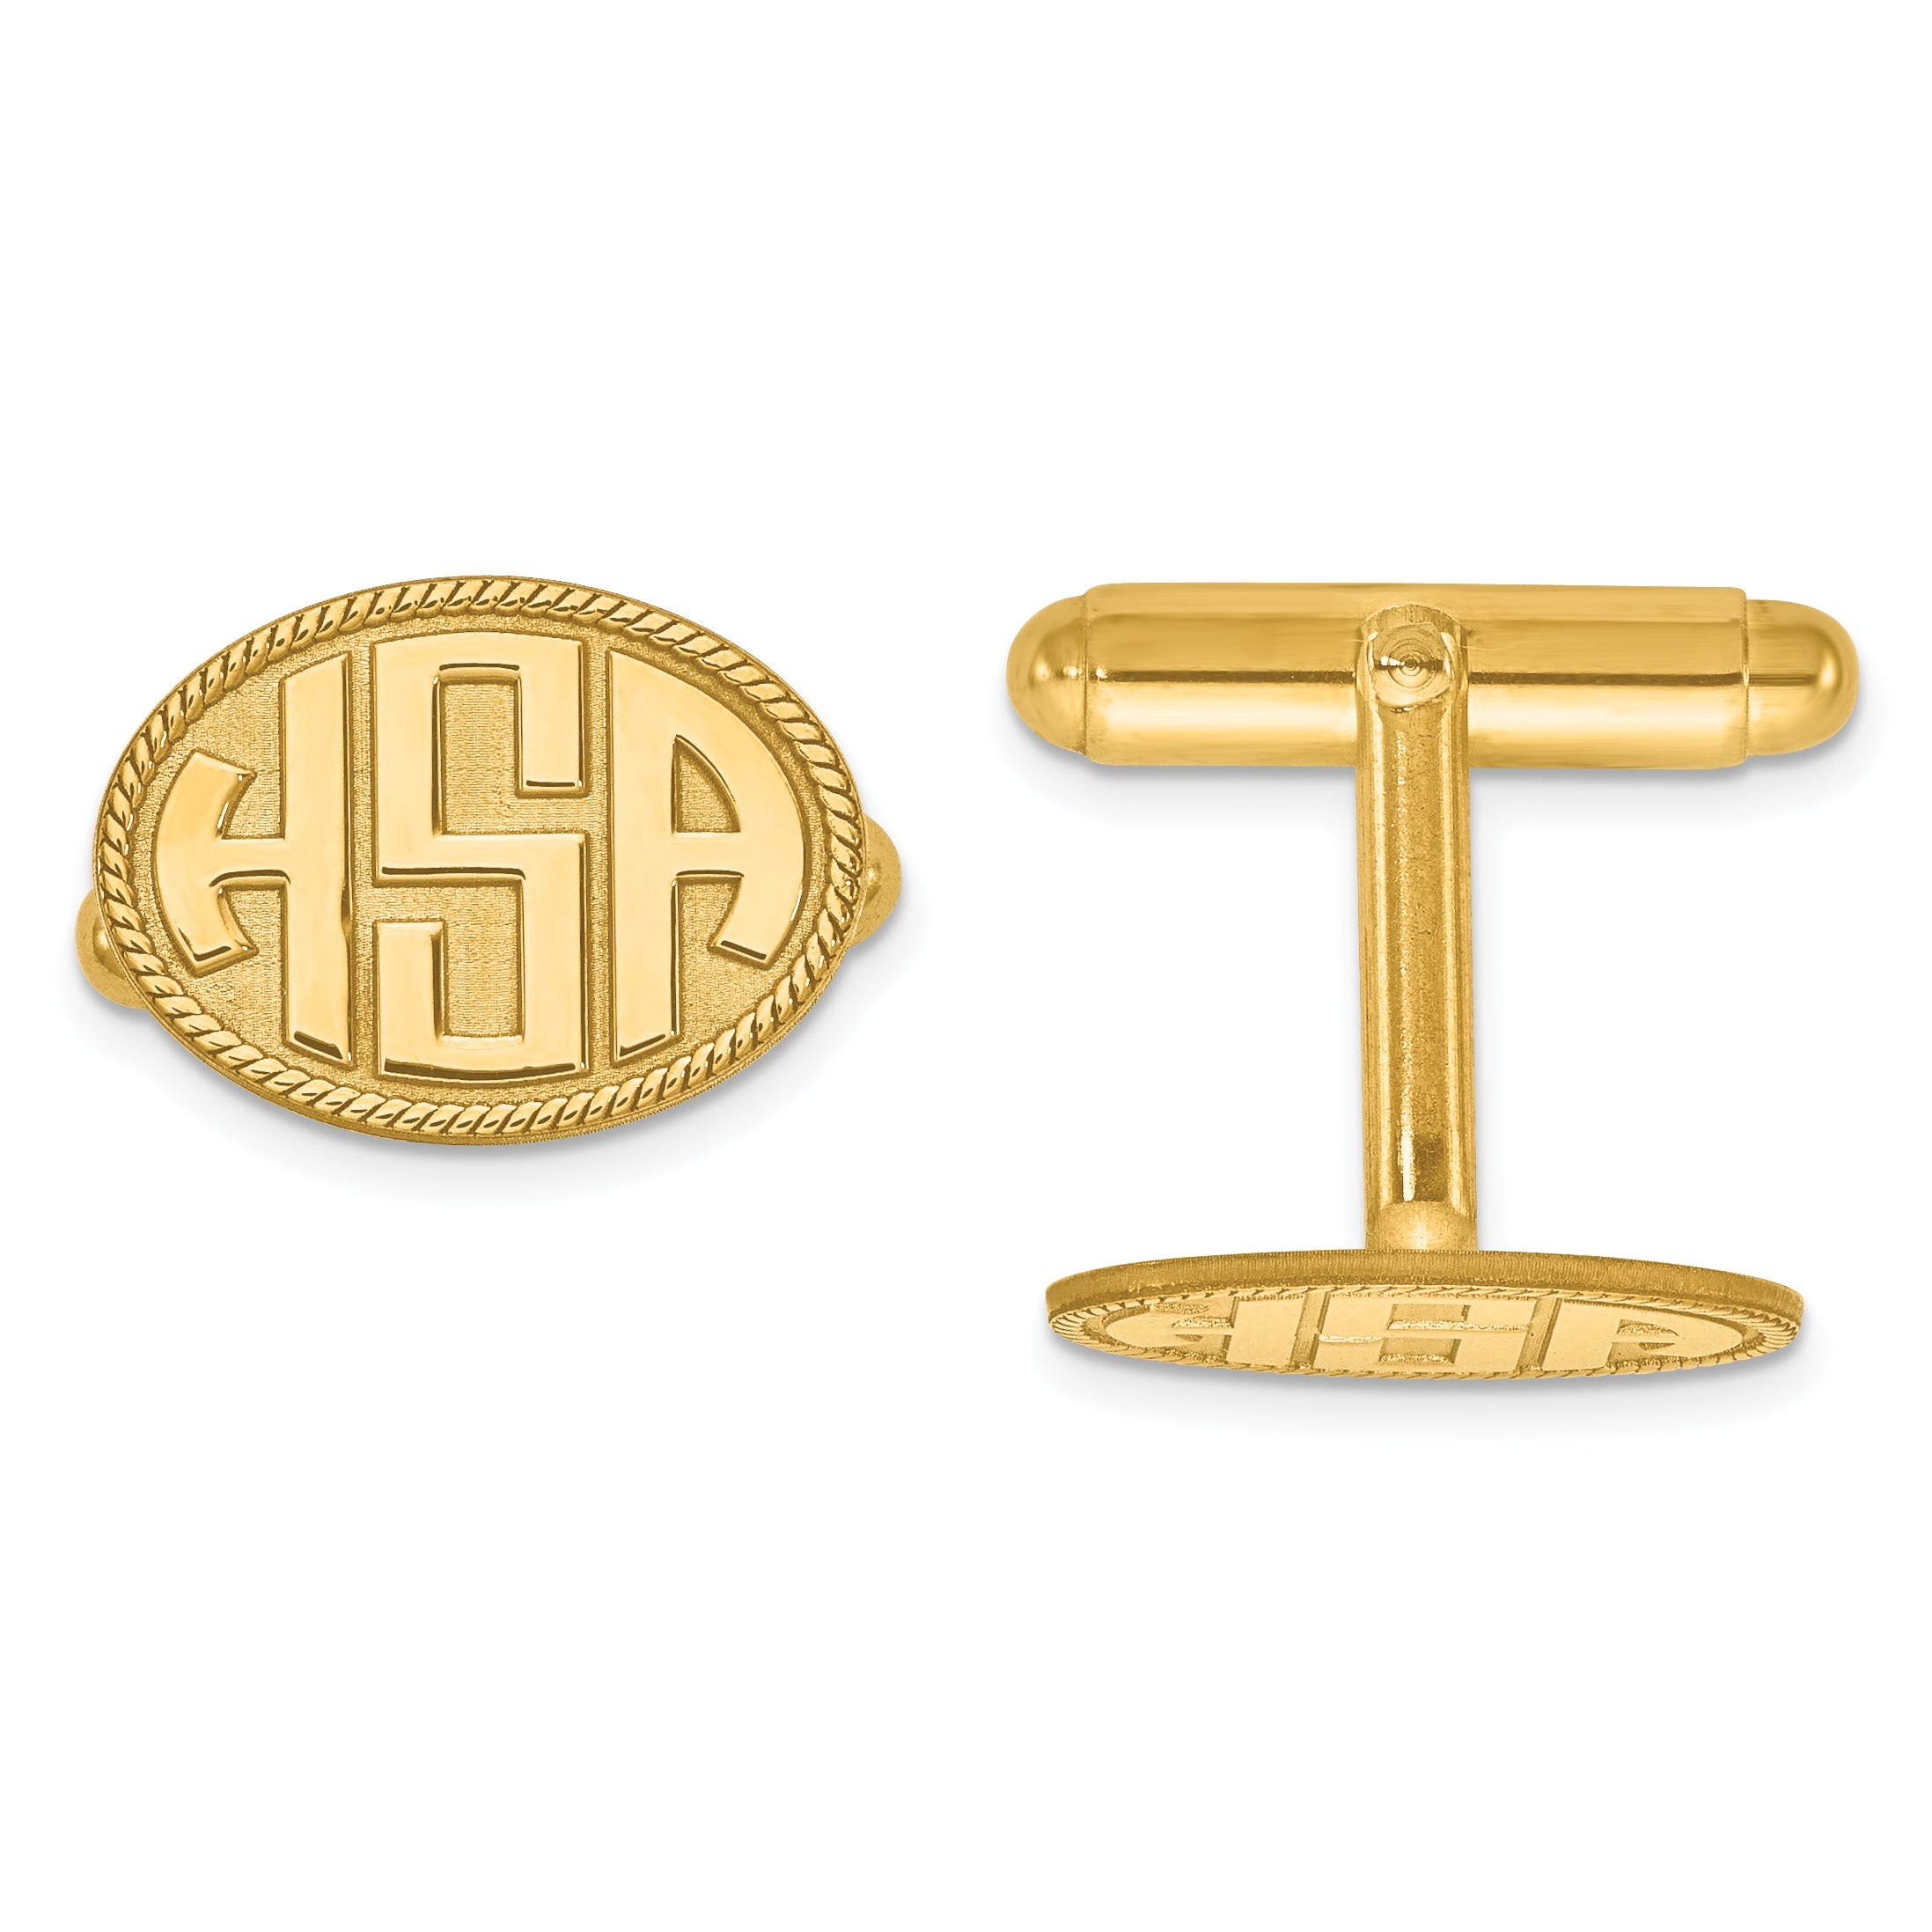 Raised Letters Oval Border Monogram Cuff Links in Gold Plated Sterling Silver (up to 3 letters)